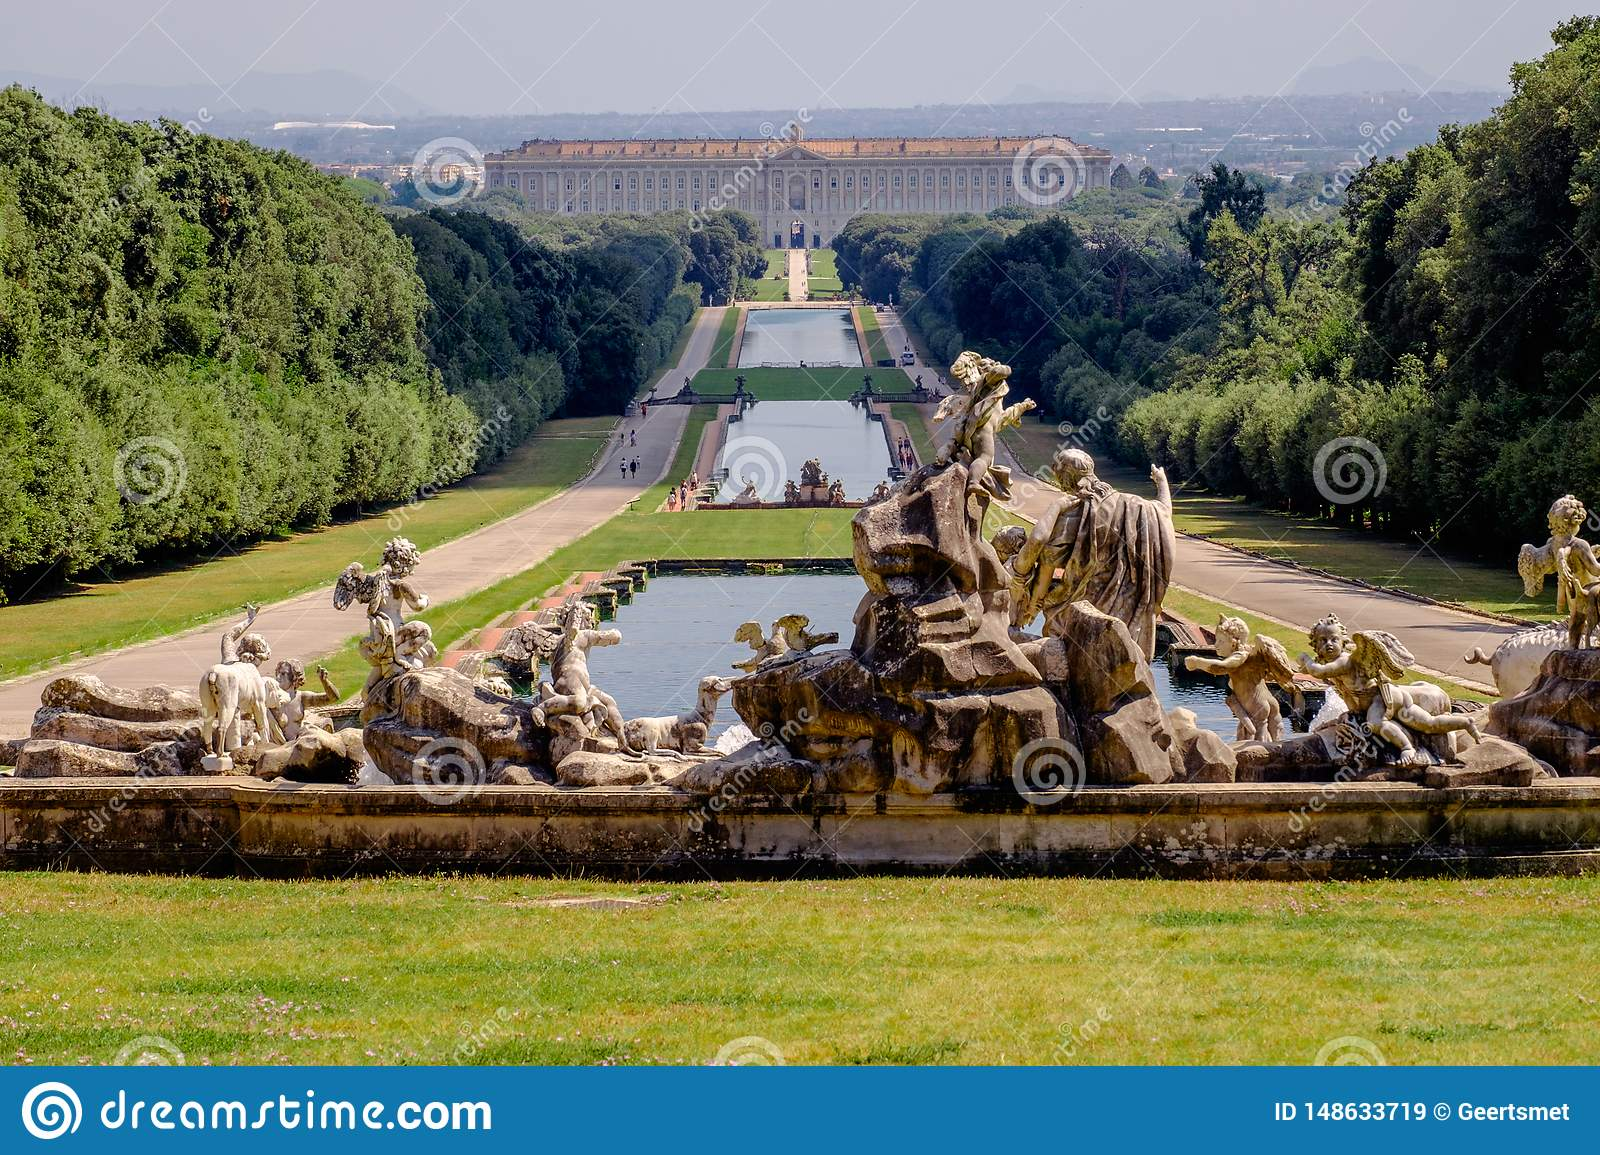 Statues and water bassins in the huge royals gardens of the `Reggia di Caserta`